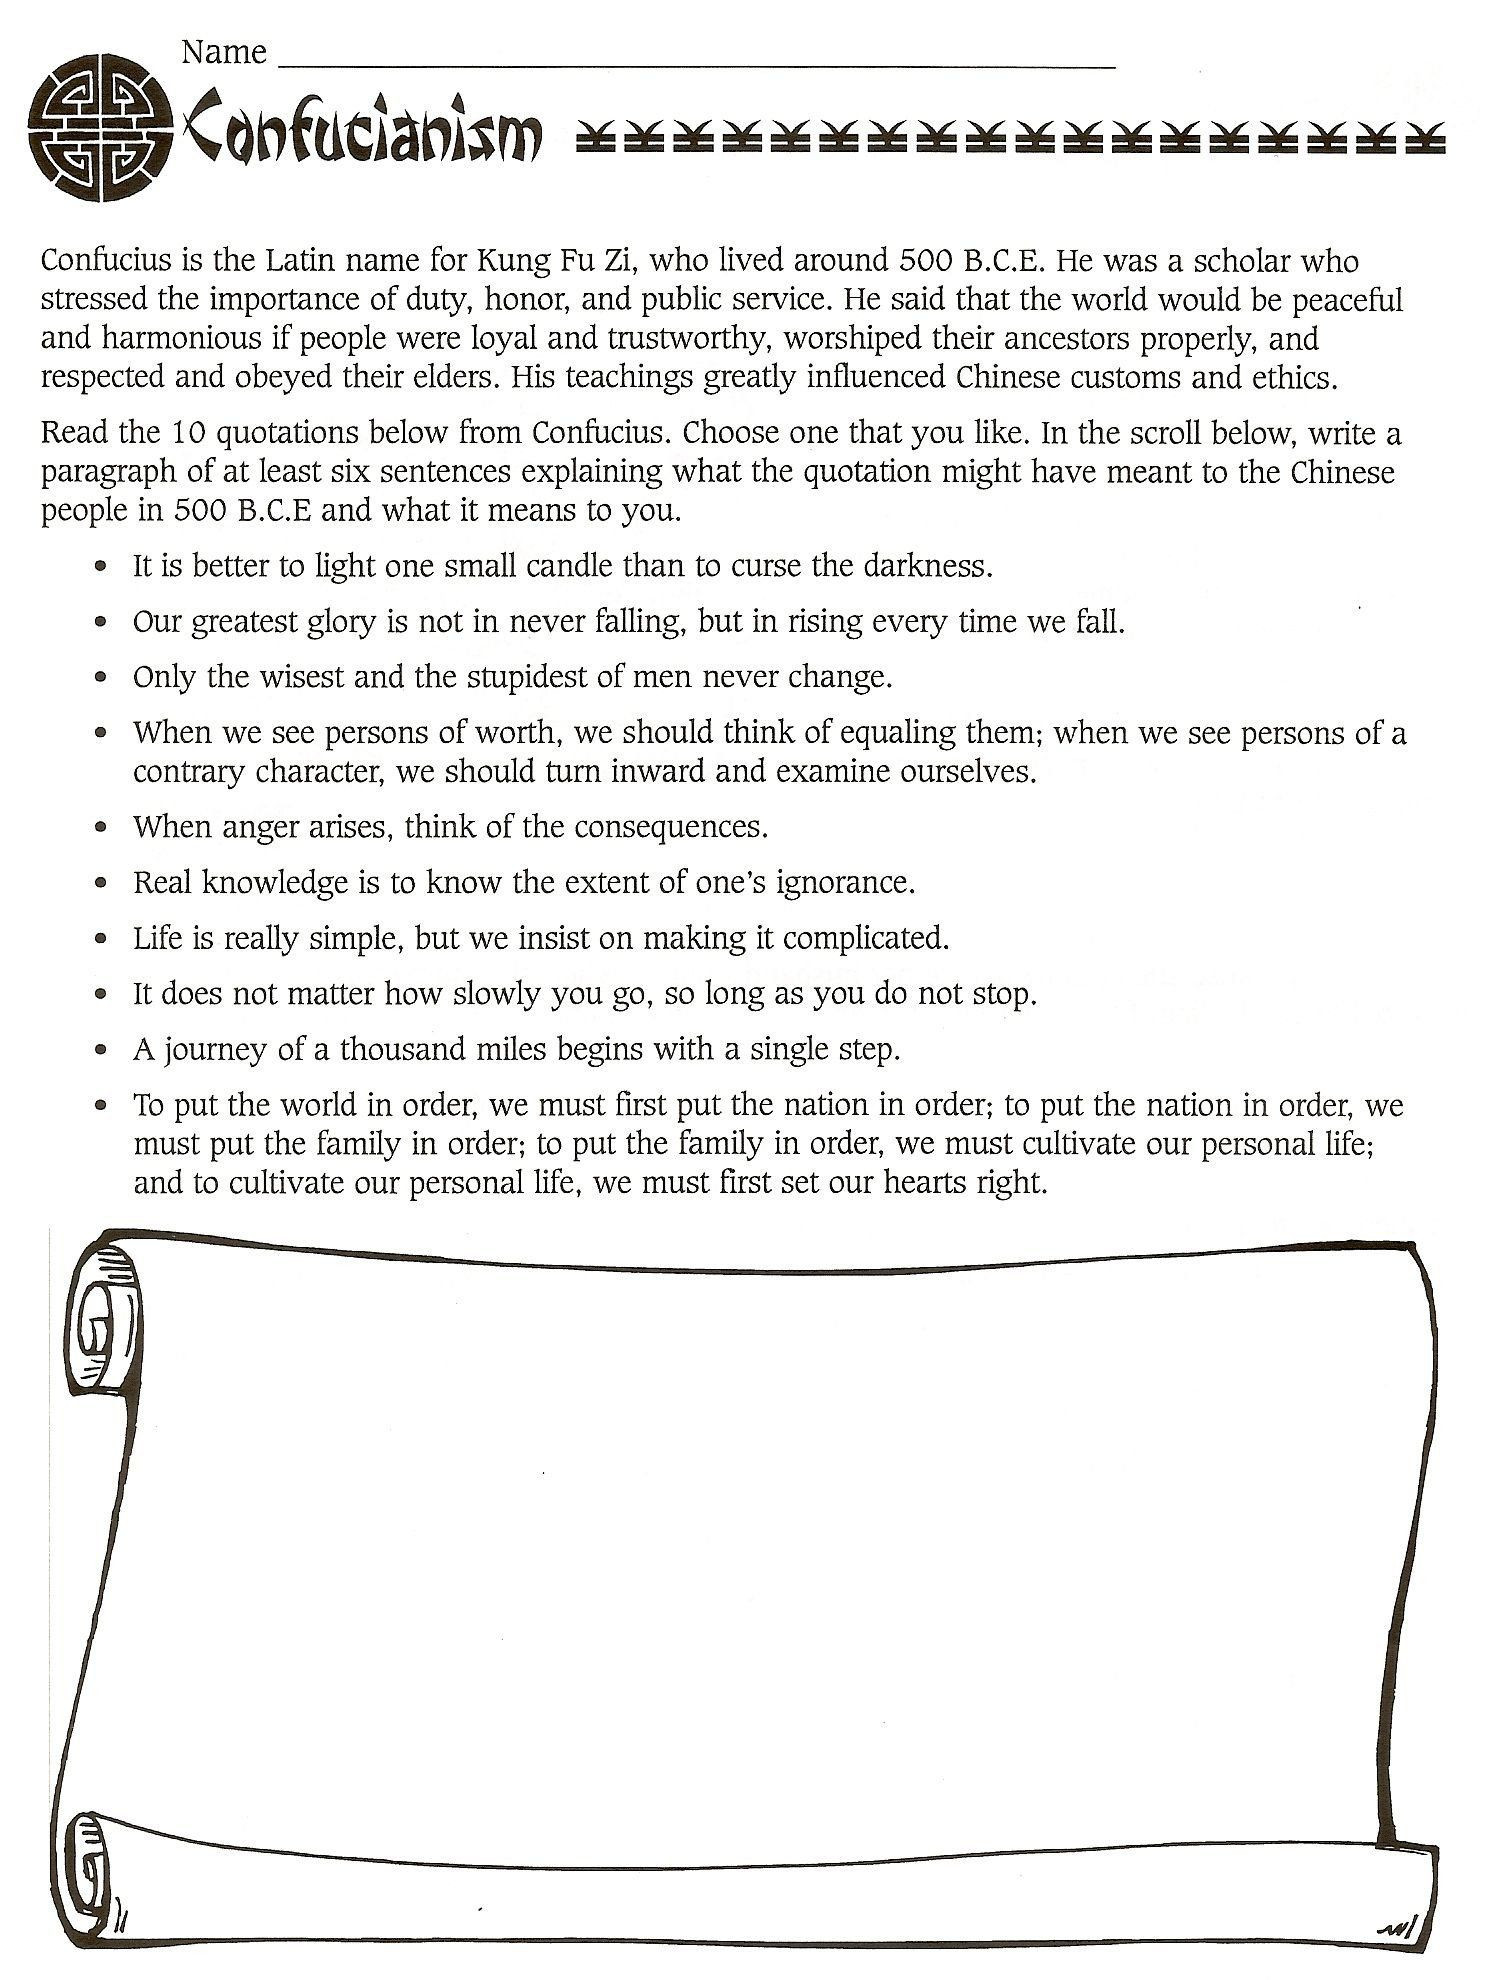 Confucius Worksheet for Middle School Confucius Worksheet for Middle School Confucianism In 2020